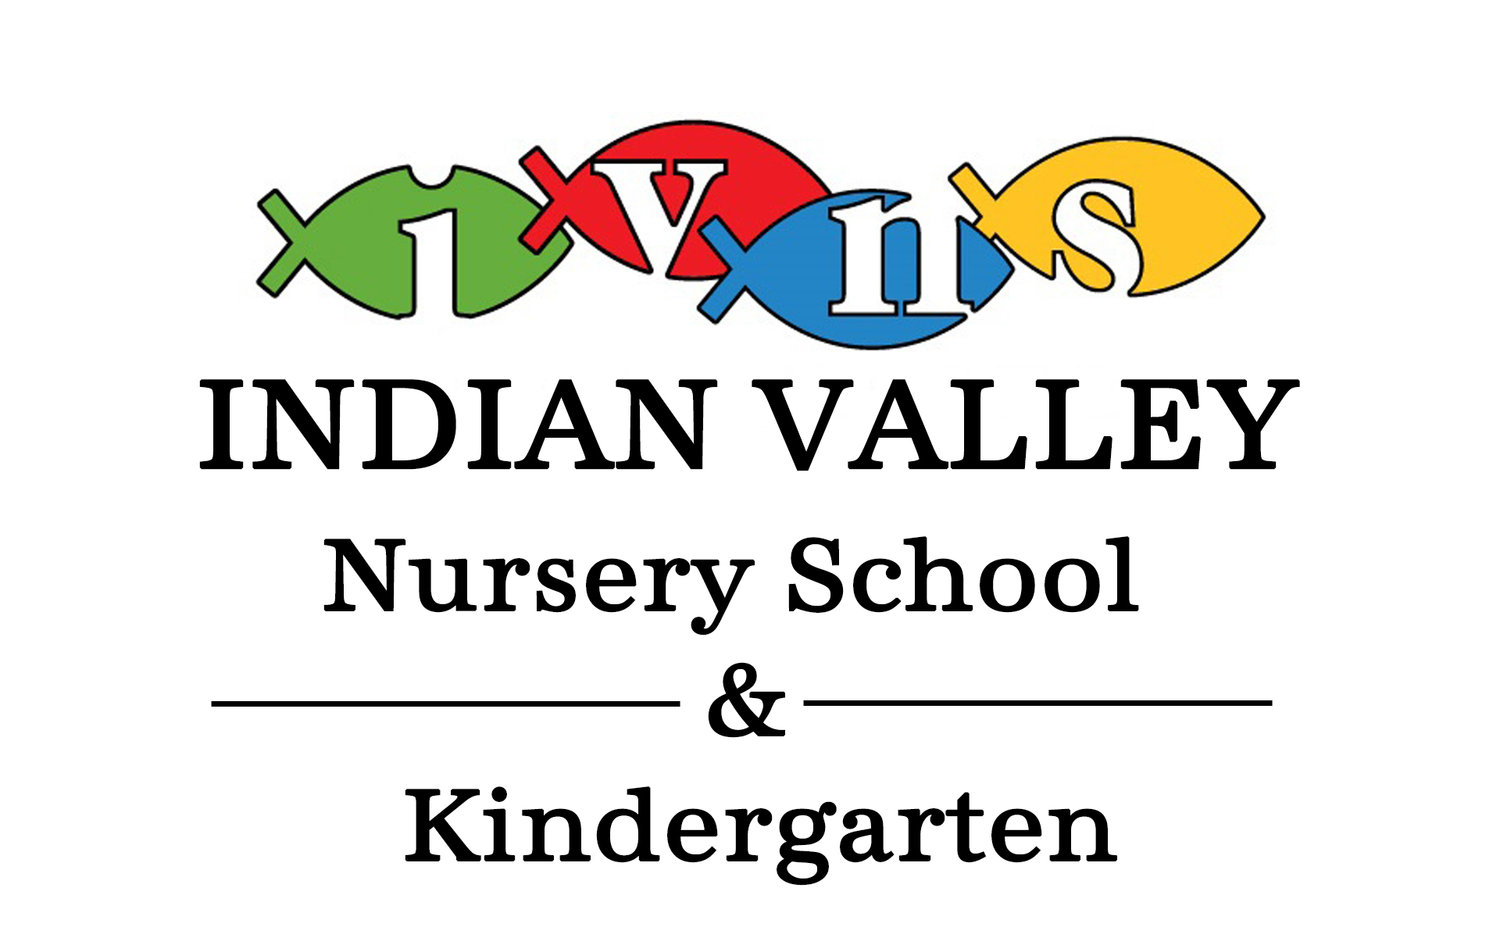 Indian Valley Nursery School and Kindergarten